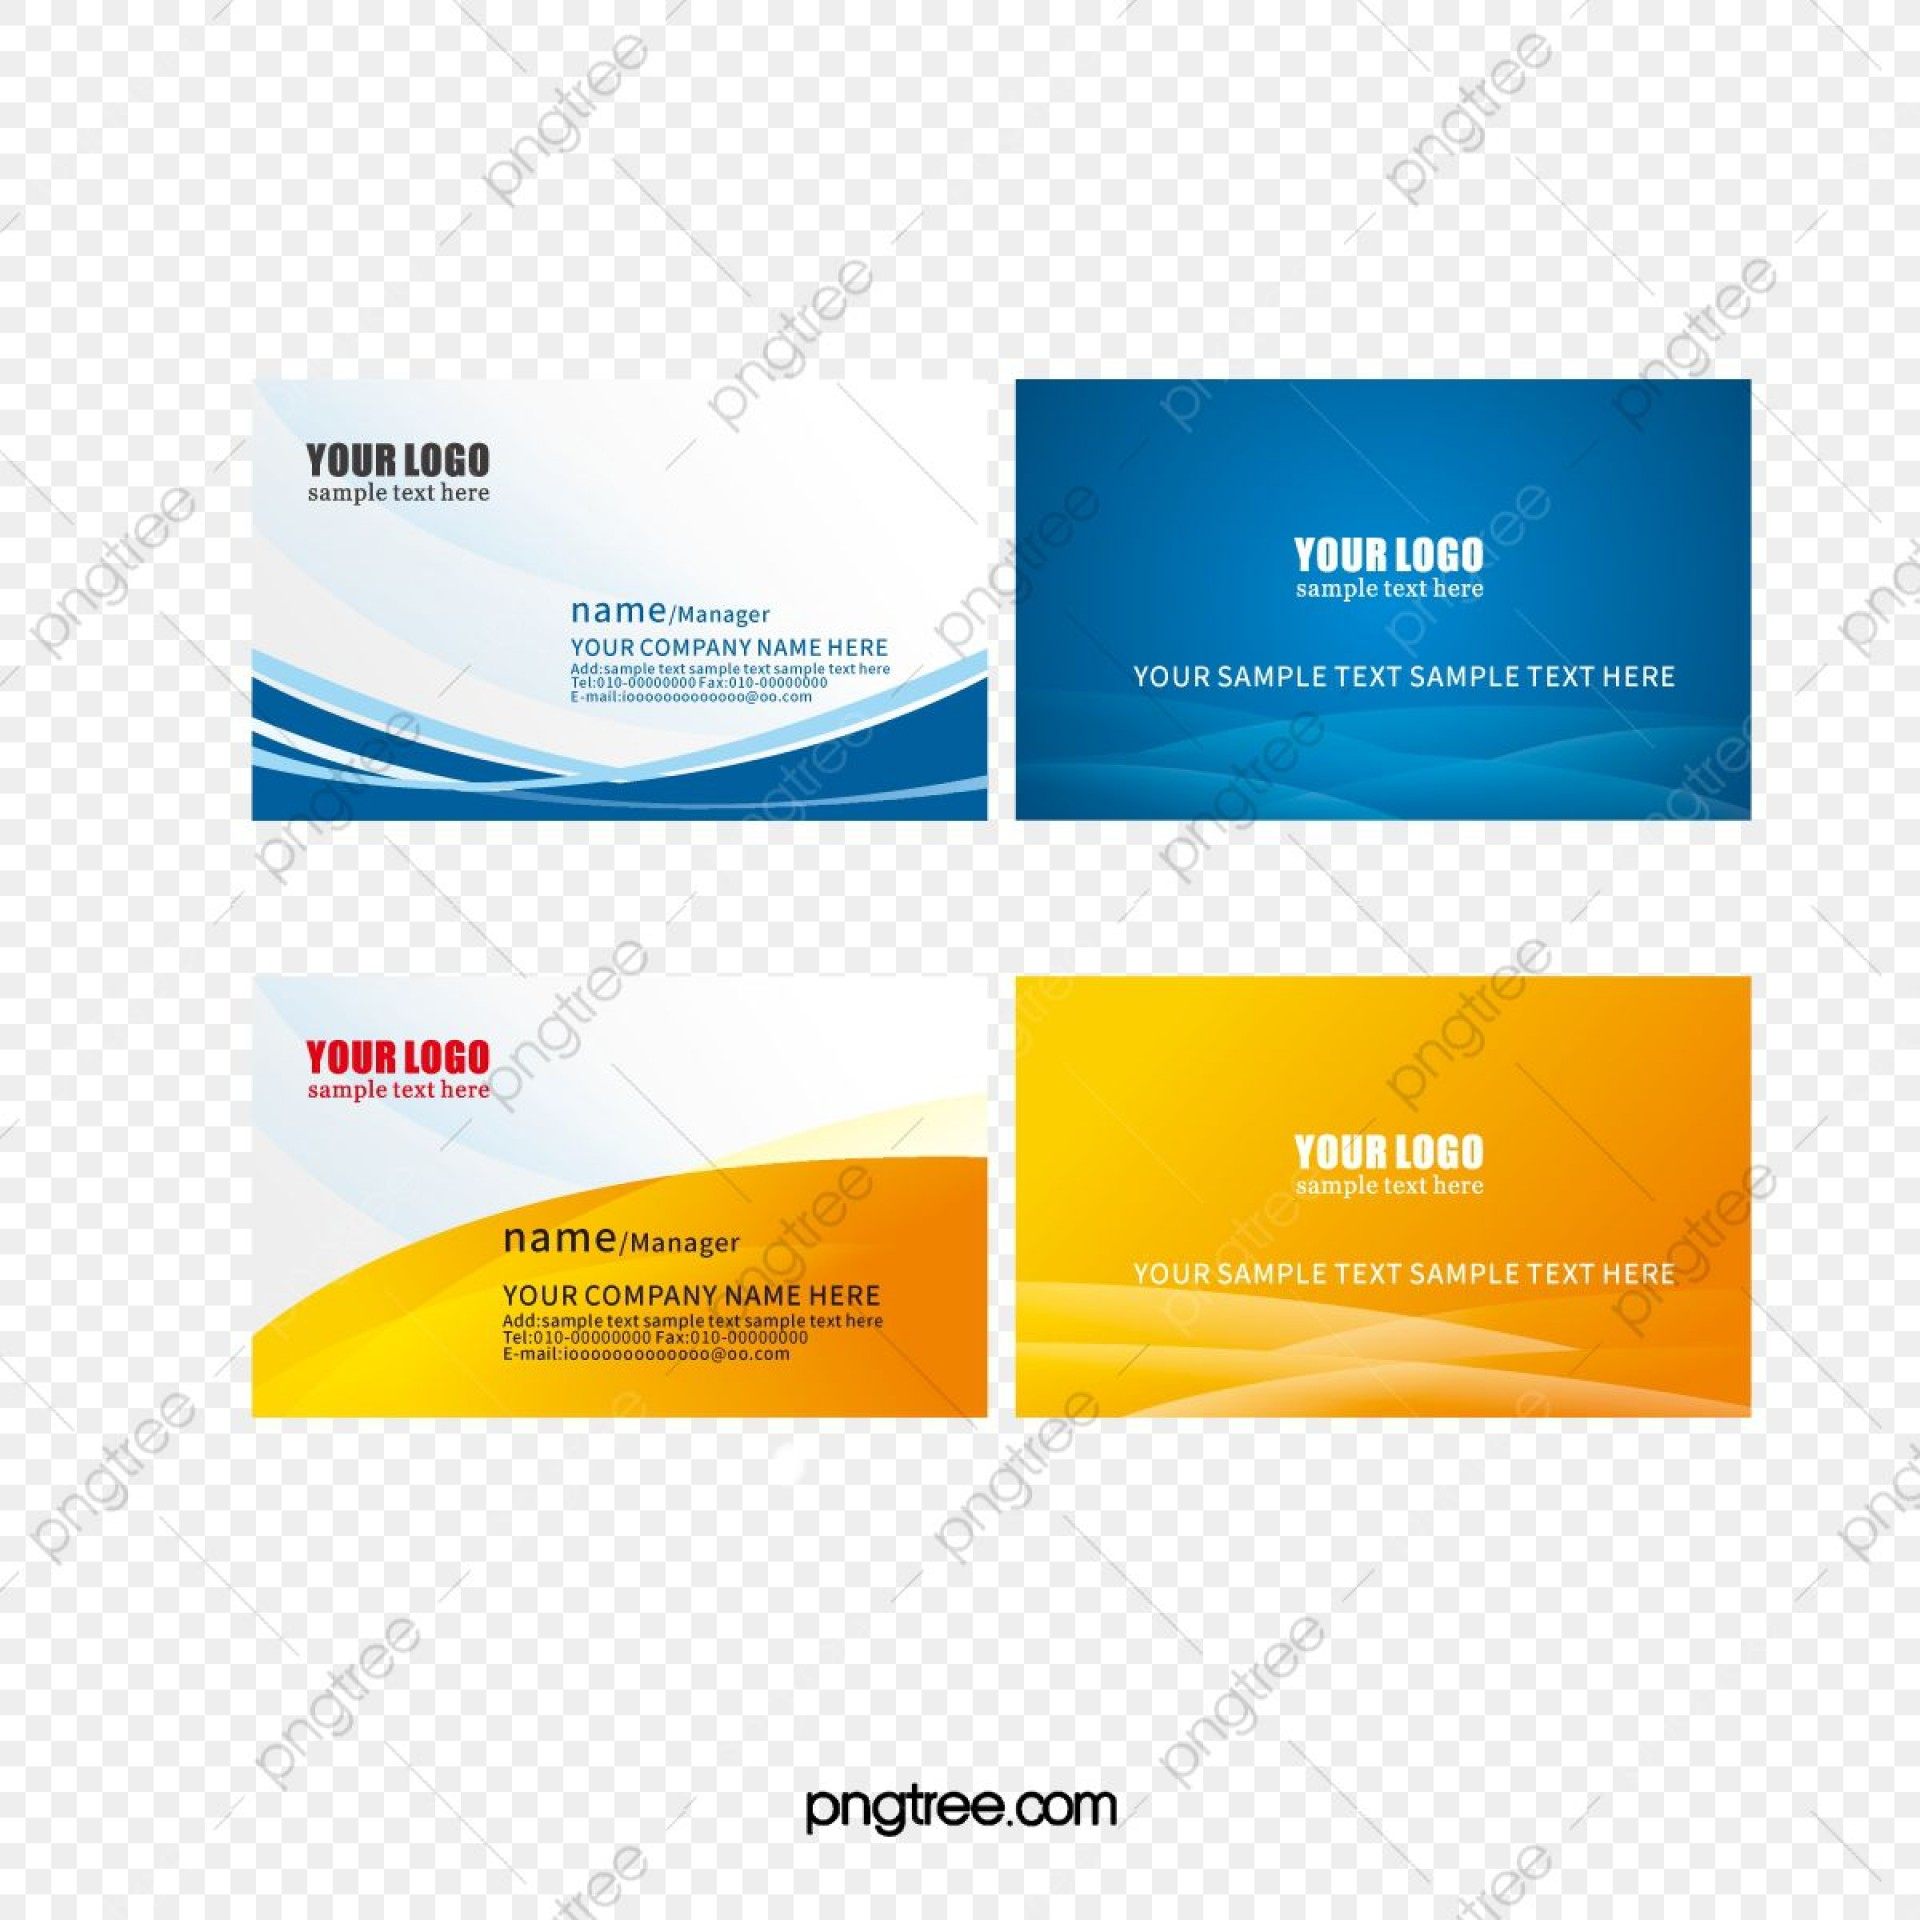 008 Best Download Busines Card Template Highest Clarity  For Microsoft Publisher Adobe Illustrator Visiting Psd1920